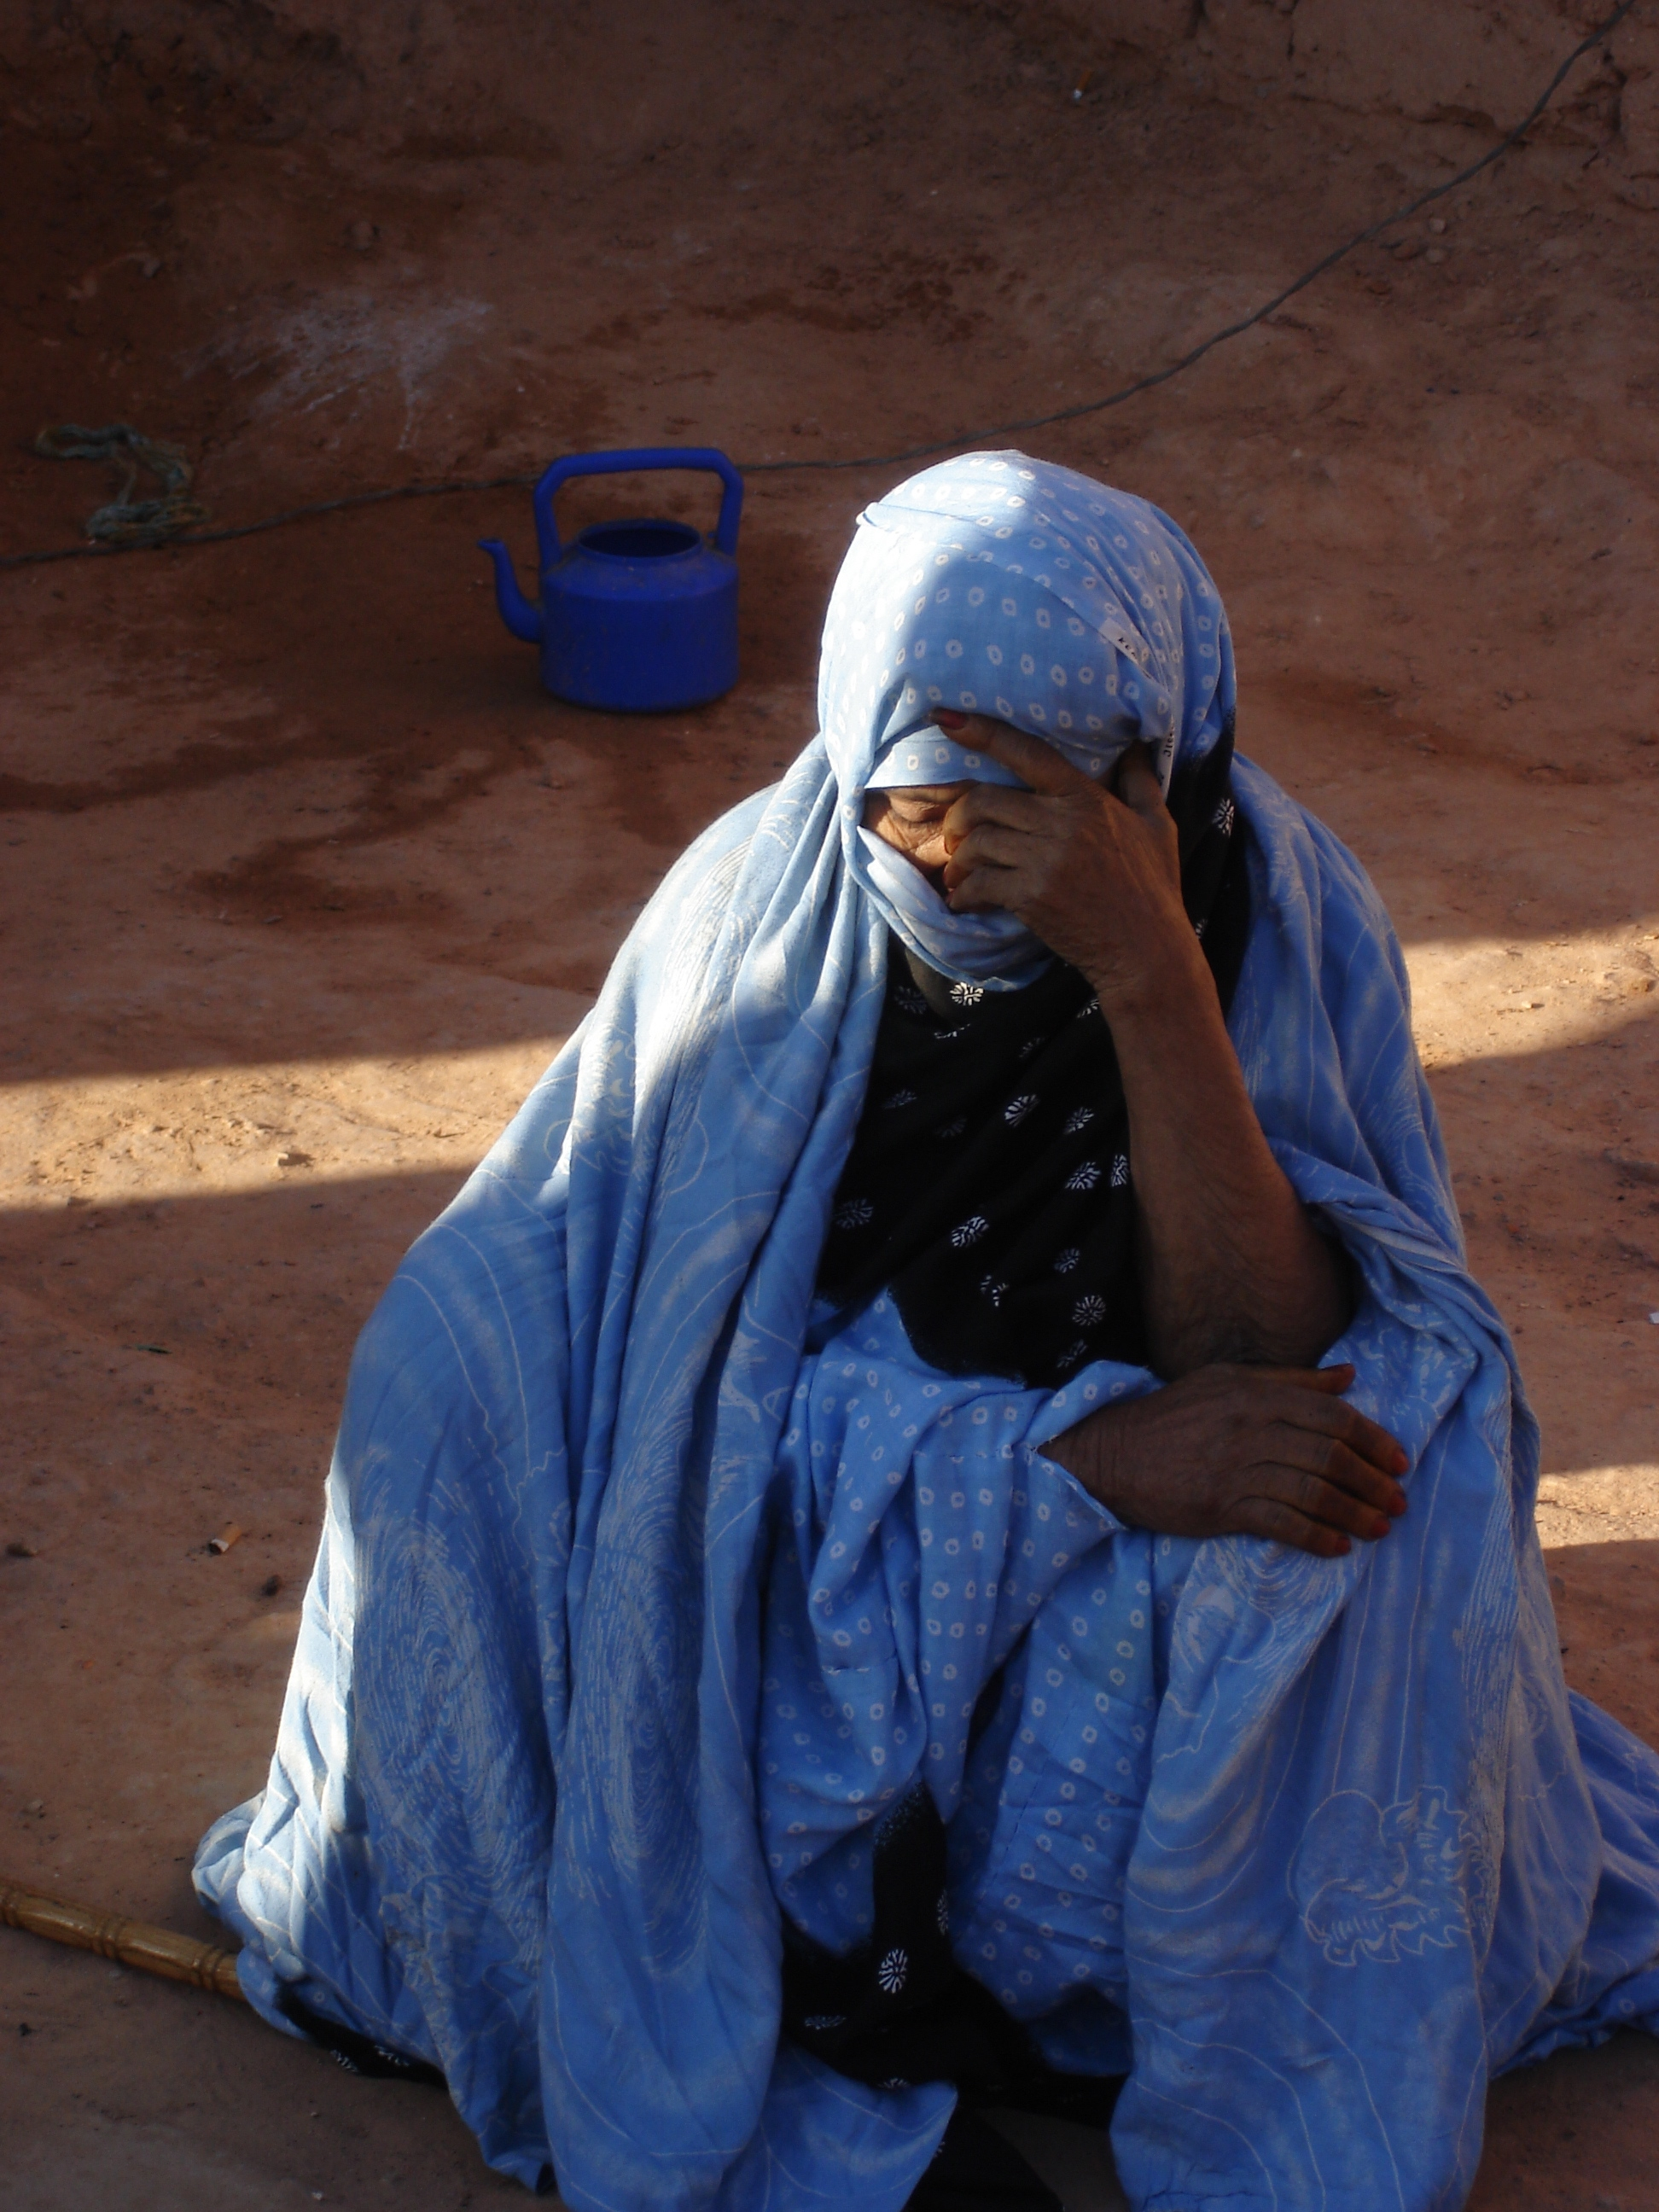 A Sahrawi refugee, divided from her family by the dispute, Western Sahara, April 2007. The Sahrawi people are divided by minefields, army outposts and a manmade wall of sand more than 2,400 km long. There has been a long-standing dispute that pits the Mor